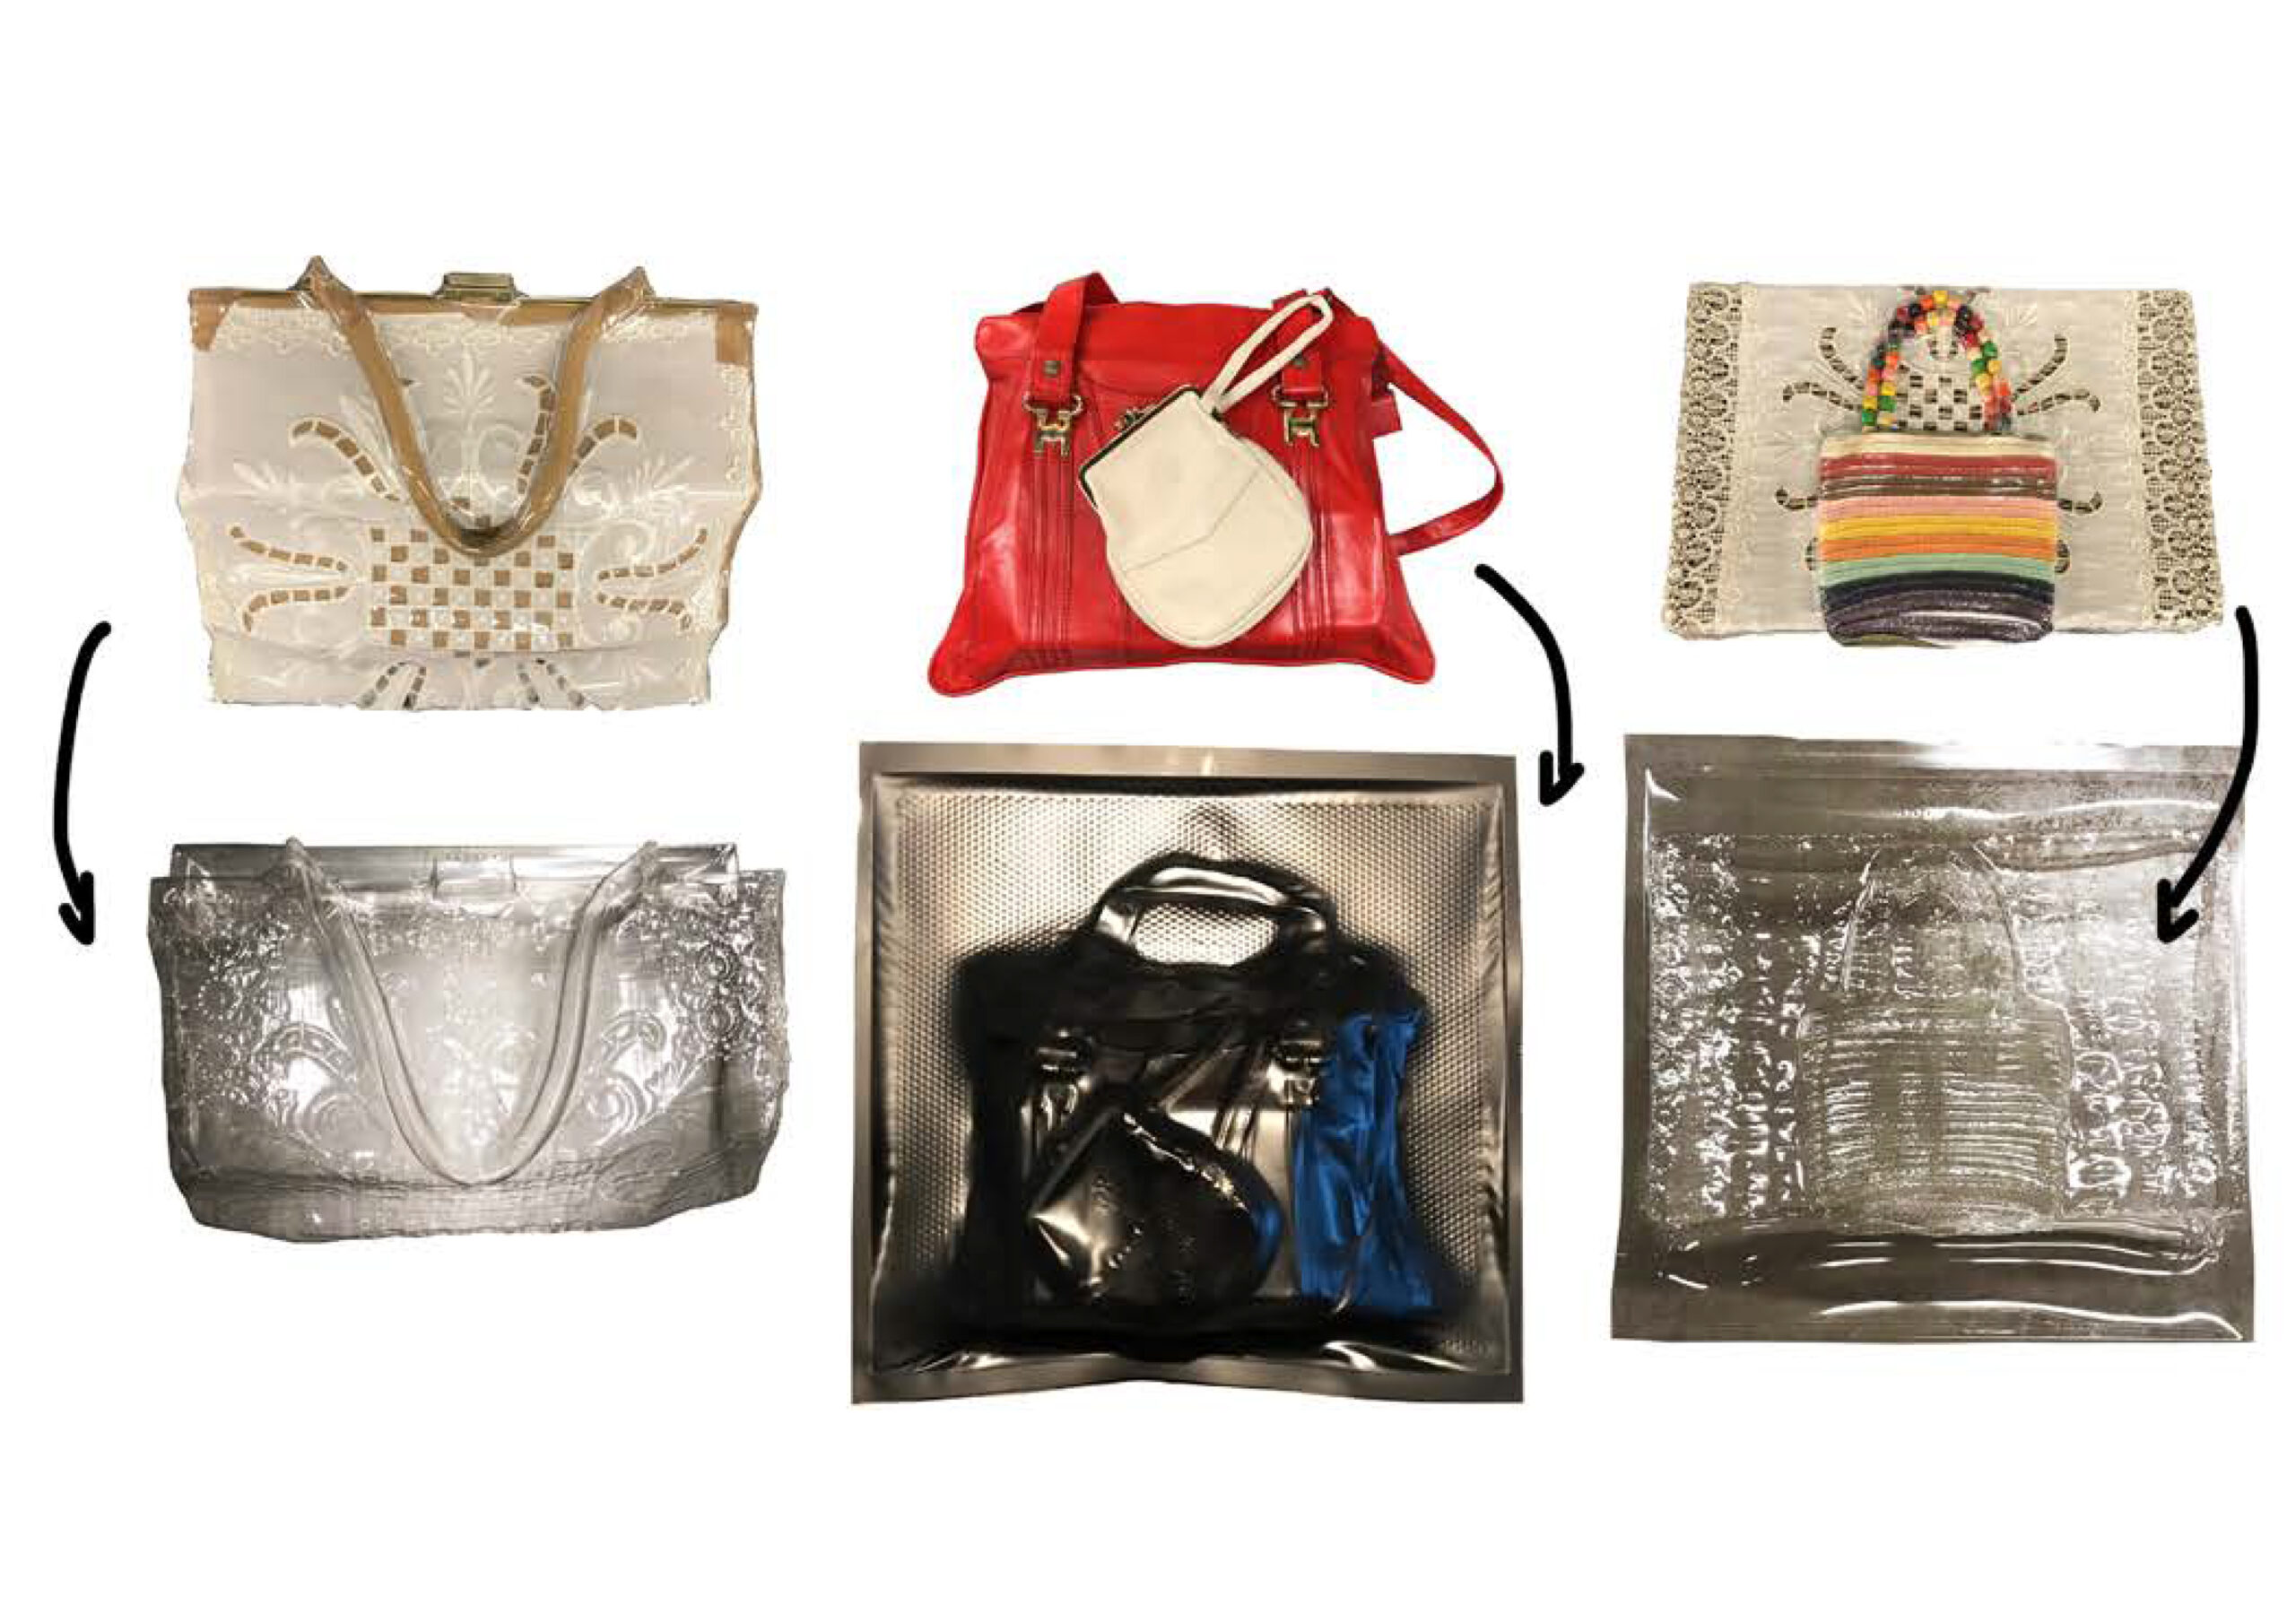 The unfunctional bags of Julie Kegels